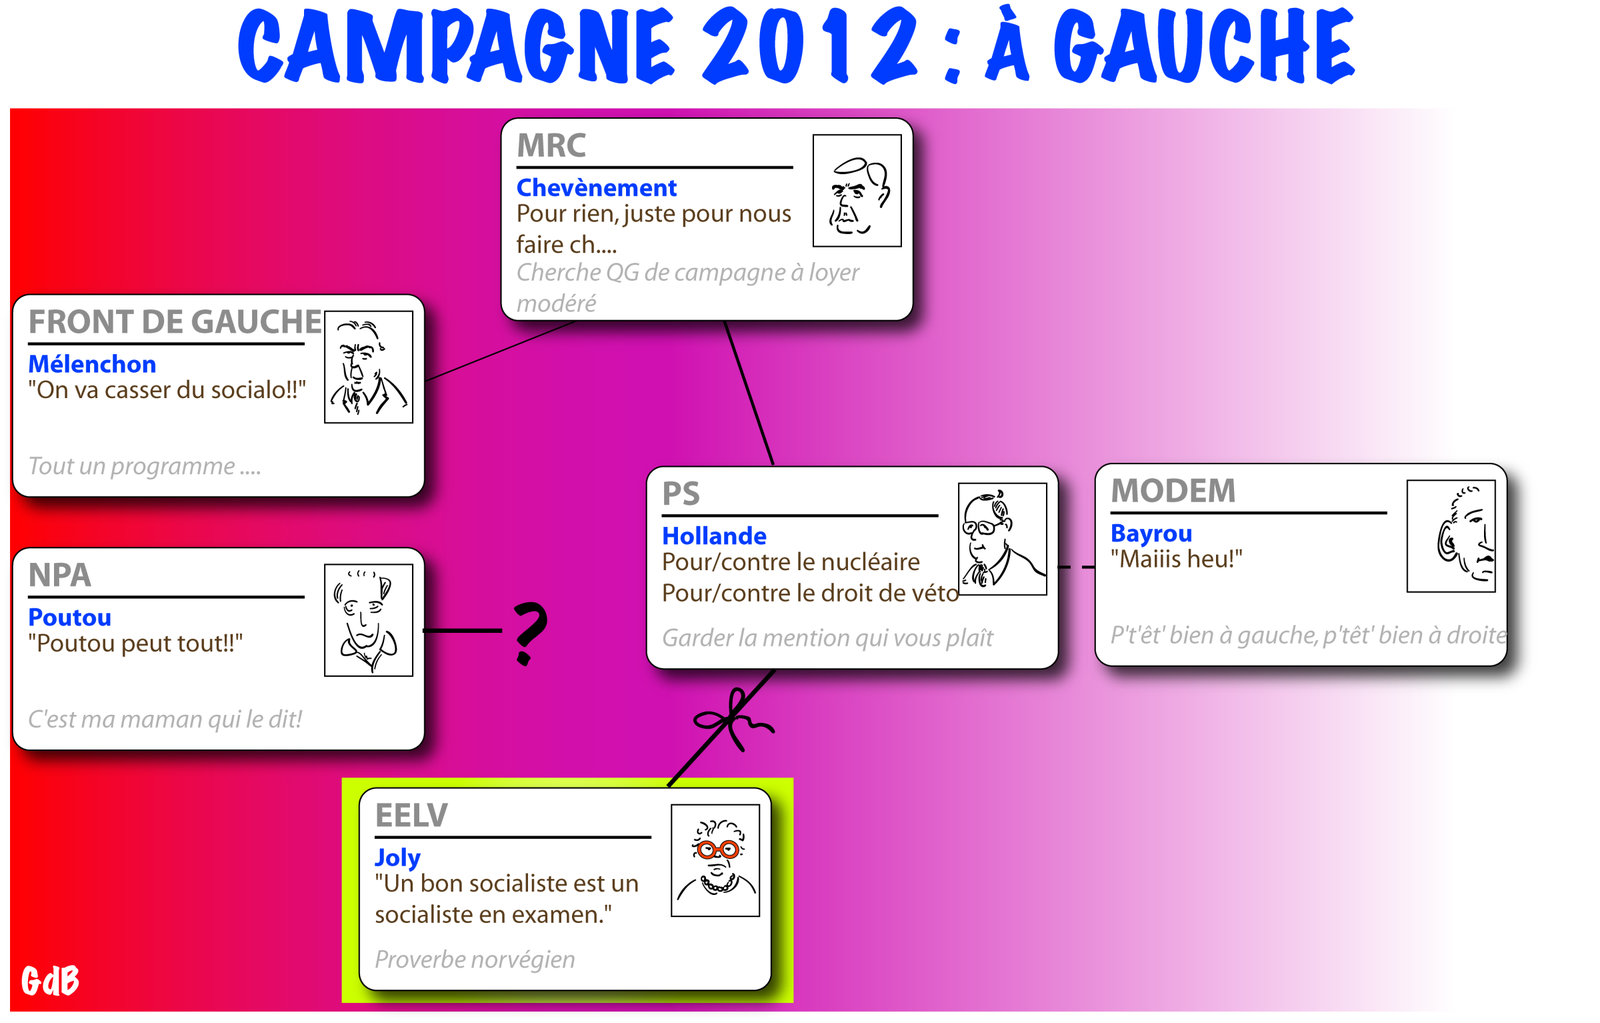 campagne2012Gauche.png